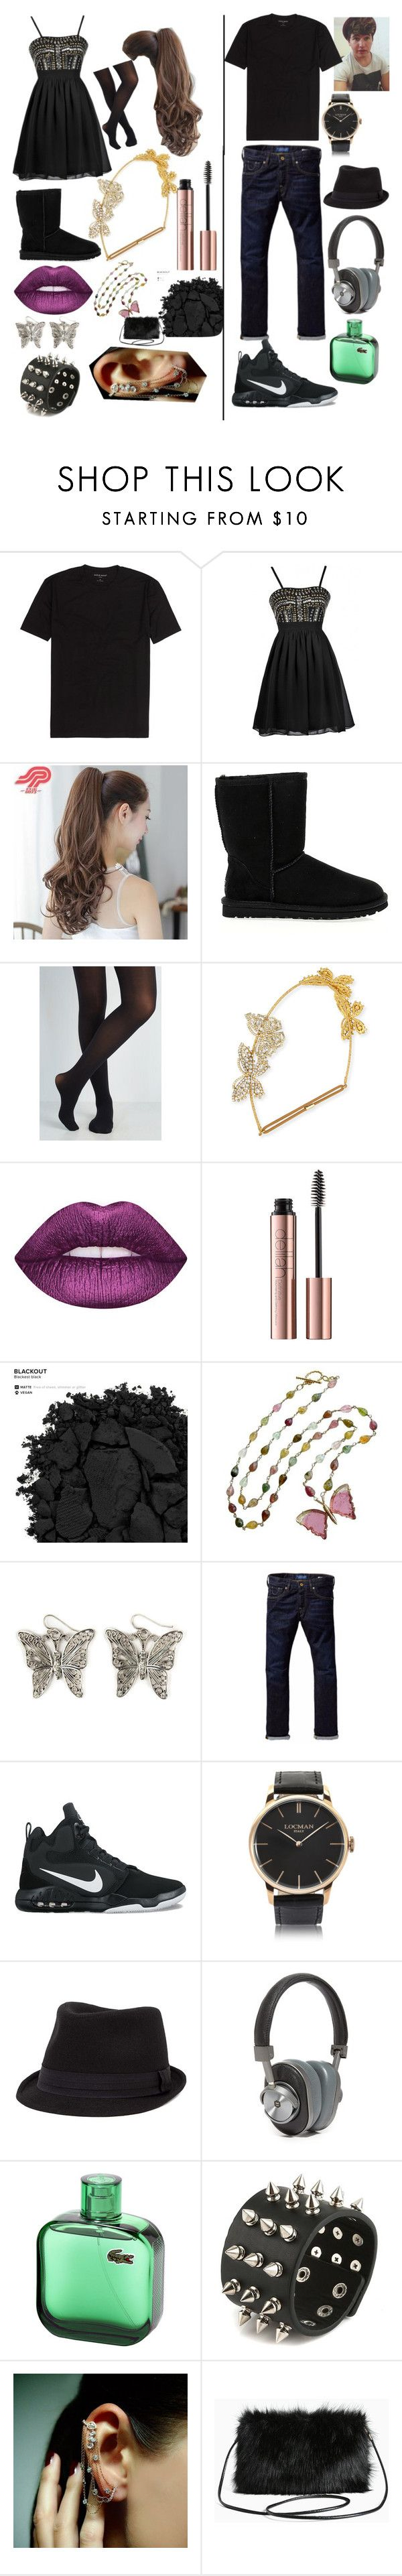 """Untitled #38"" by emberjoy-922 on Polyvore featuring Pin Show, UGG Australia, Jennifer Behr, Urban Decay, Pink Mint, Arizona, Scotch & Soda, NIKE, Locman and BKE"